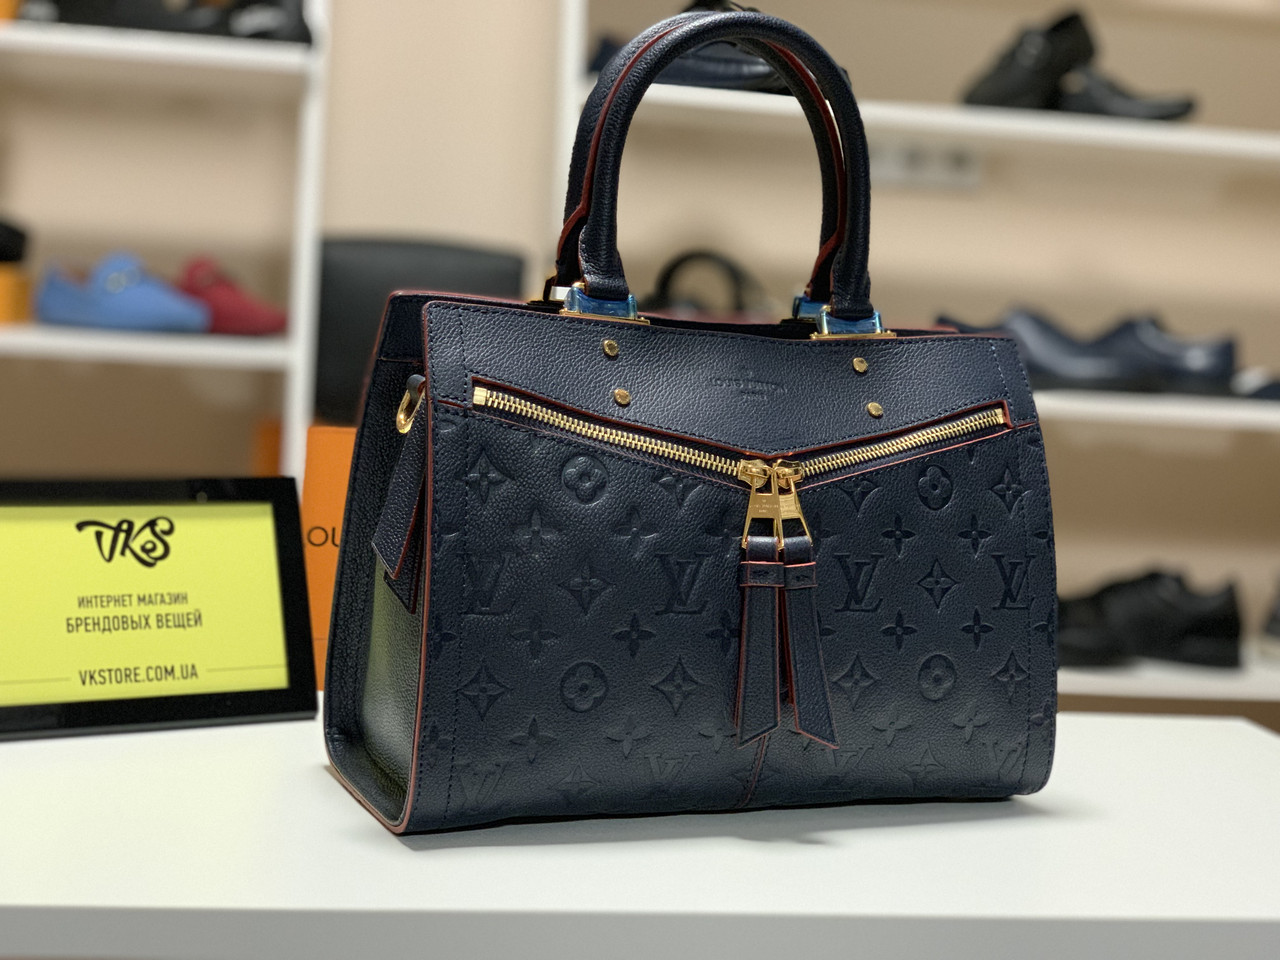 f8b9416dd5bb Женская сумка Louis Vuitton Sully PM | vkstore.com.ua